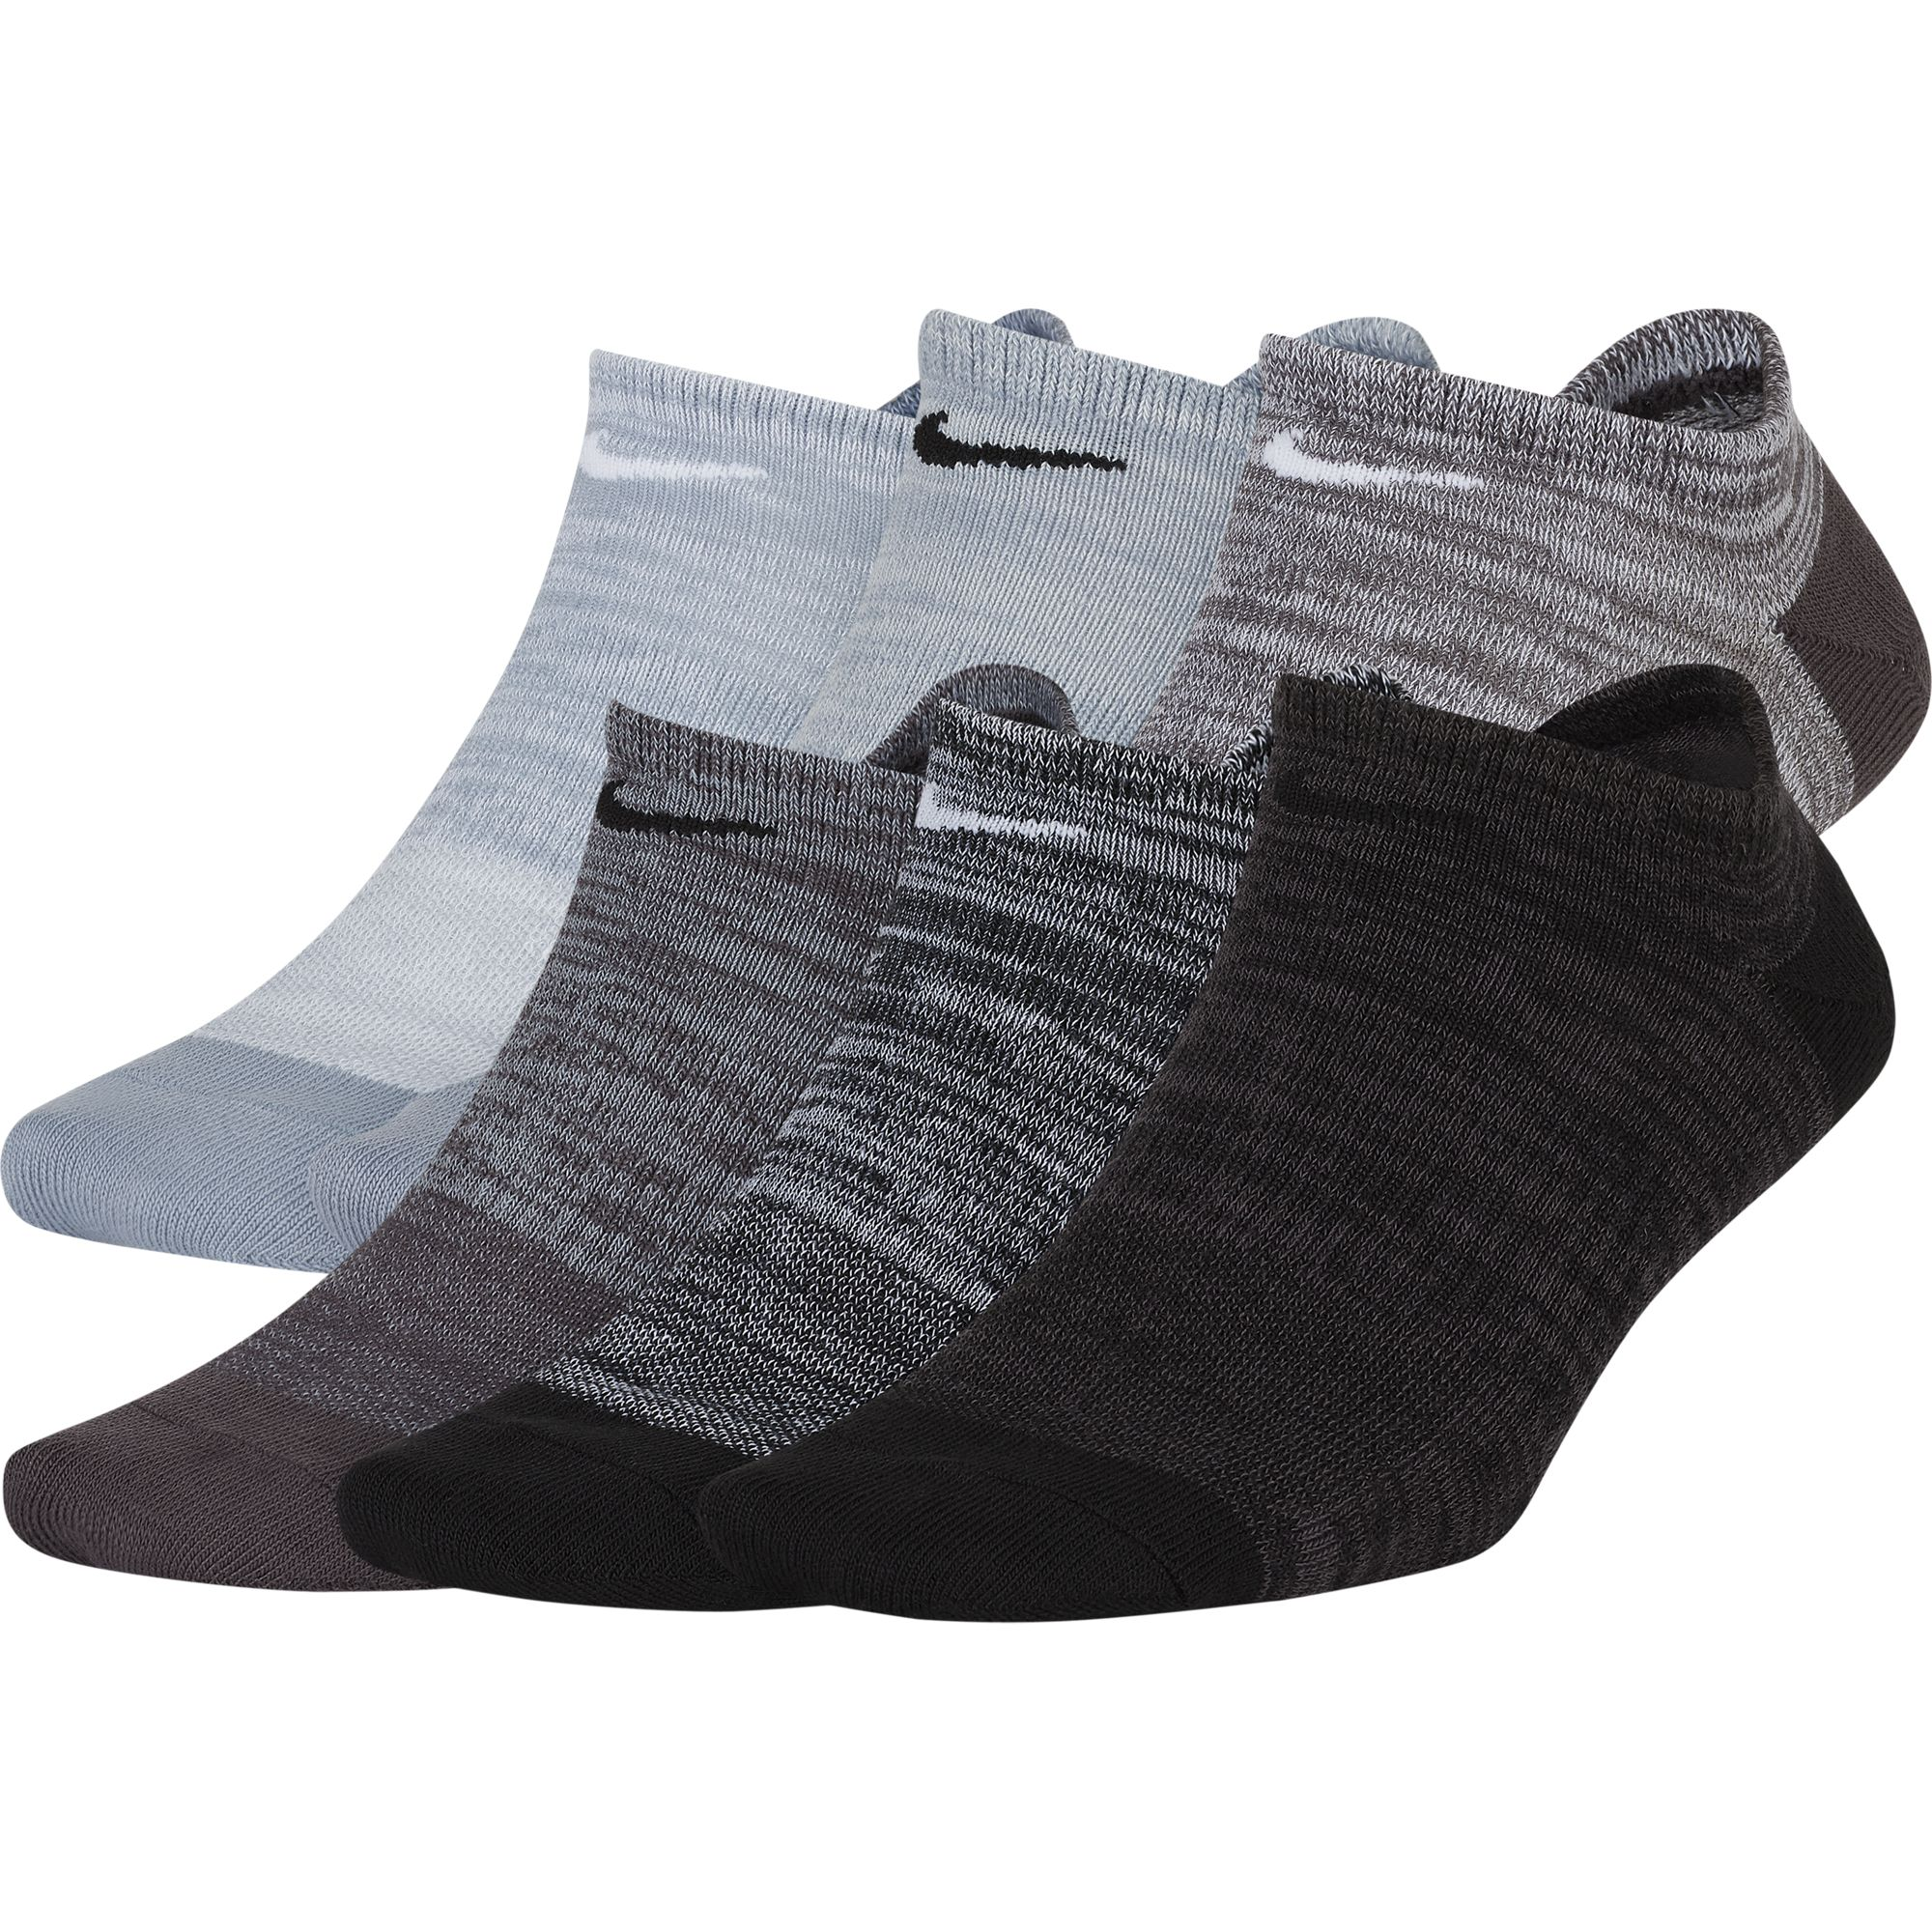 Women's Everyday Lightweight No-Show Socks 6-Pack, , large